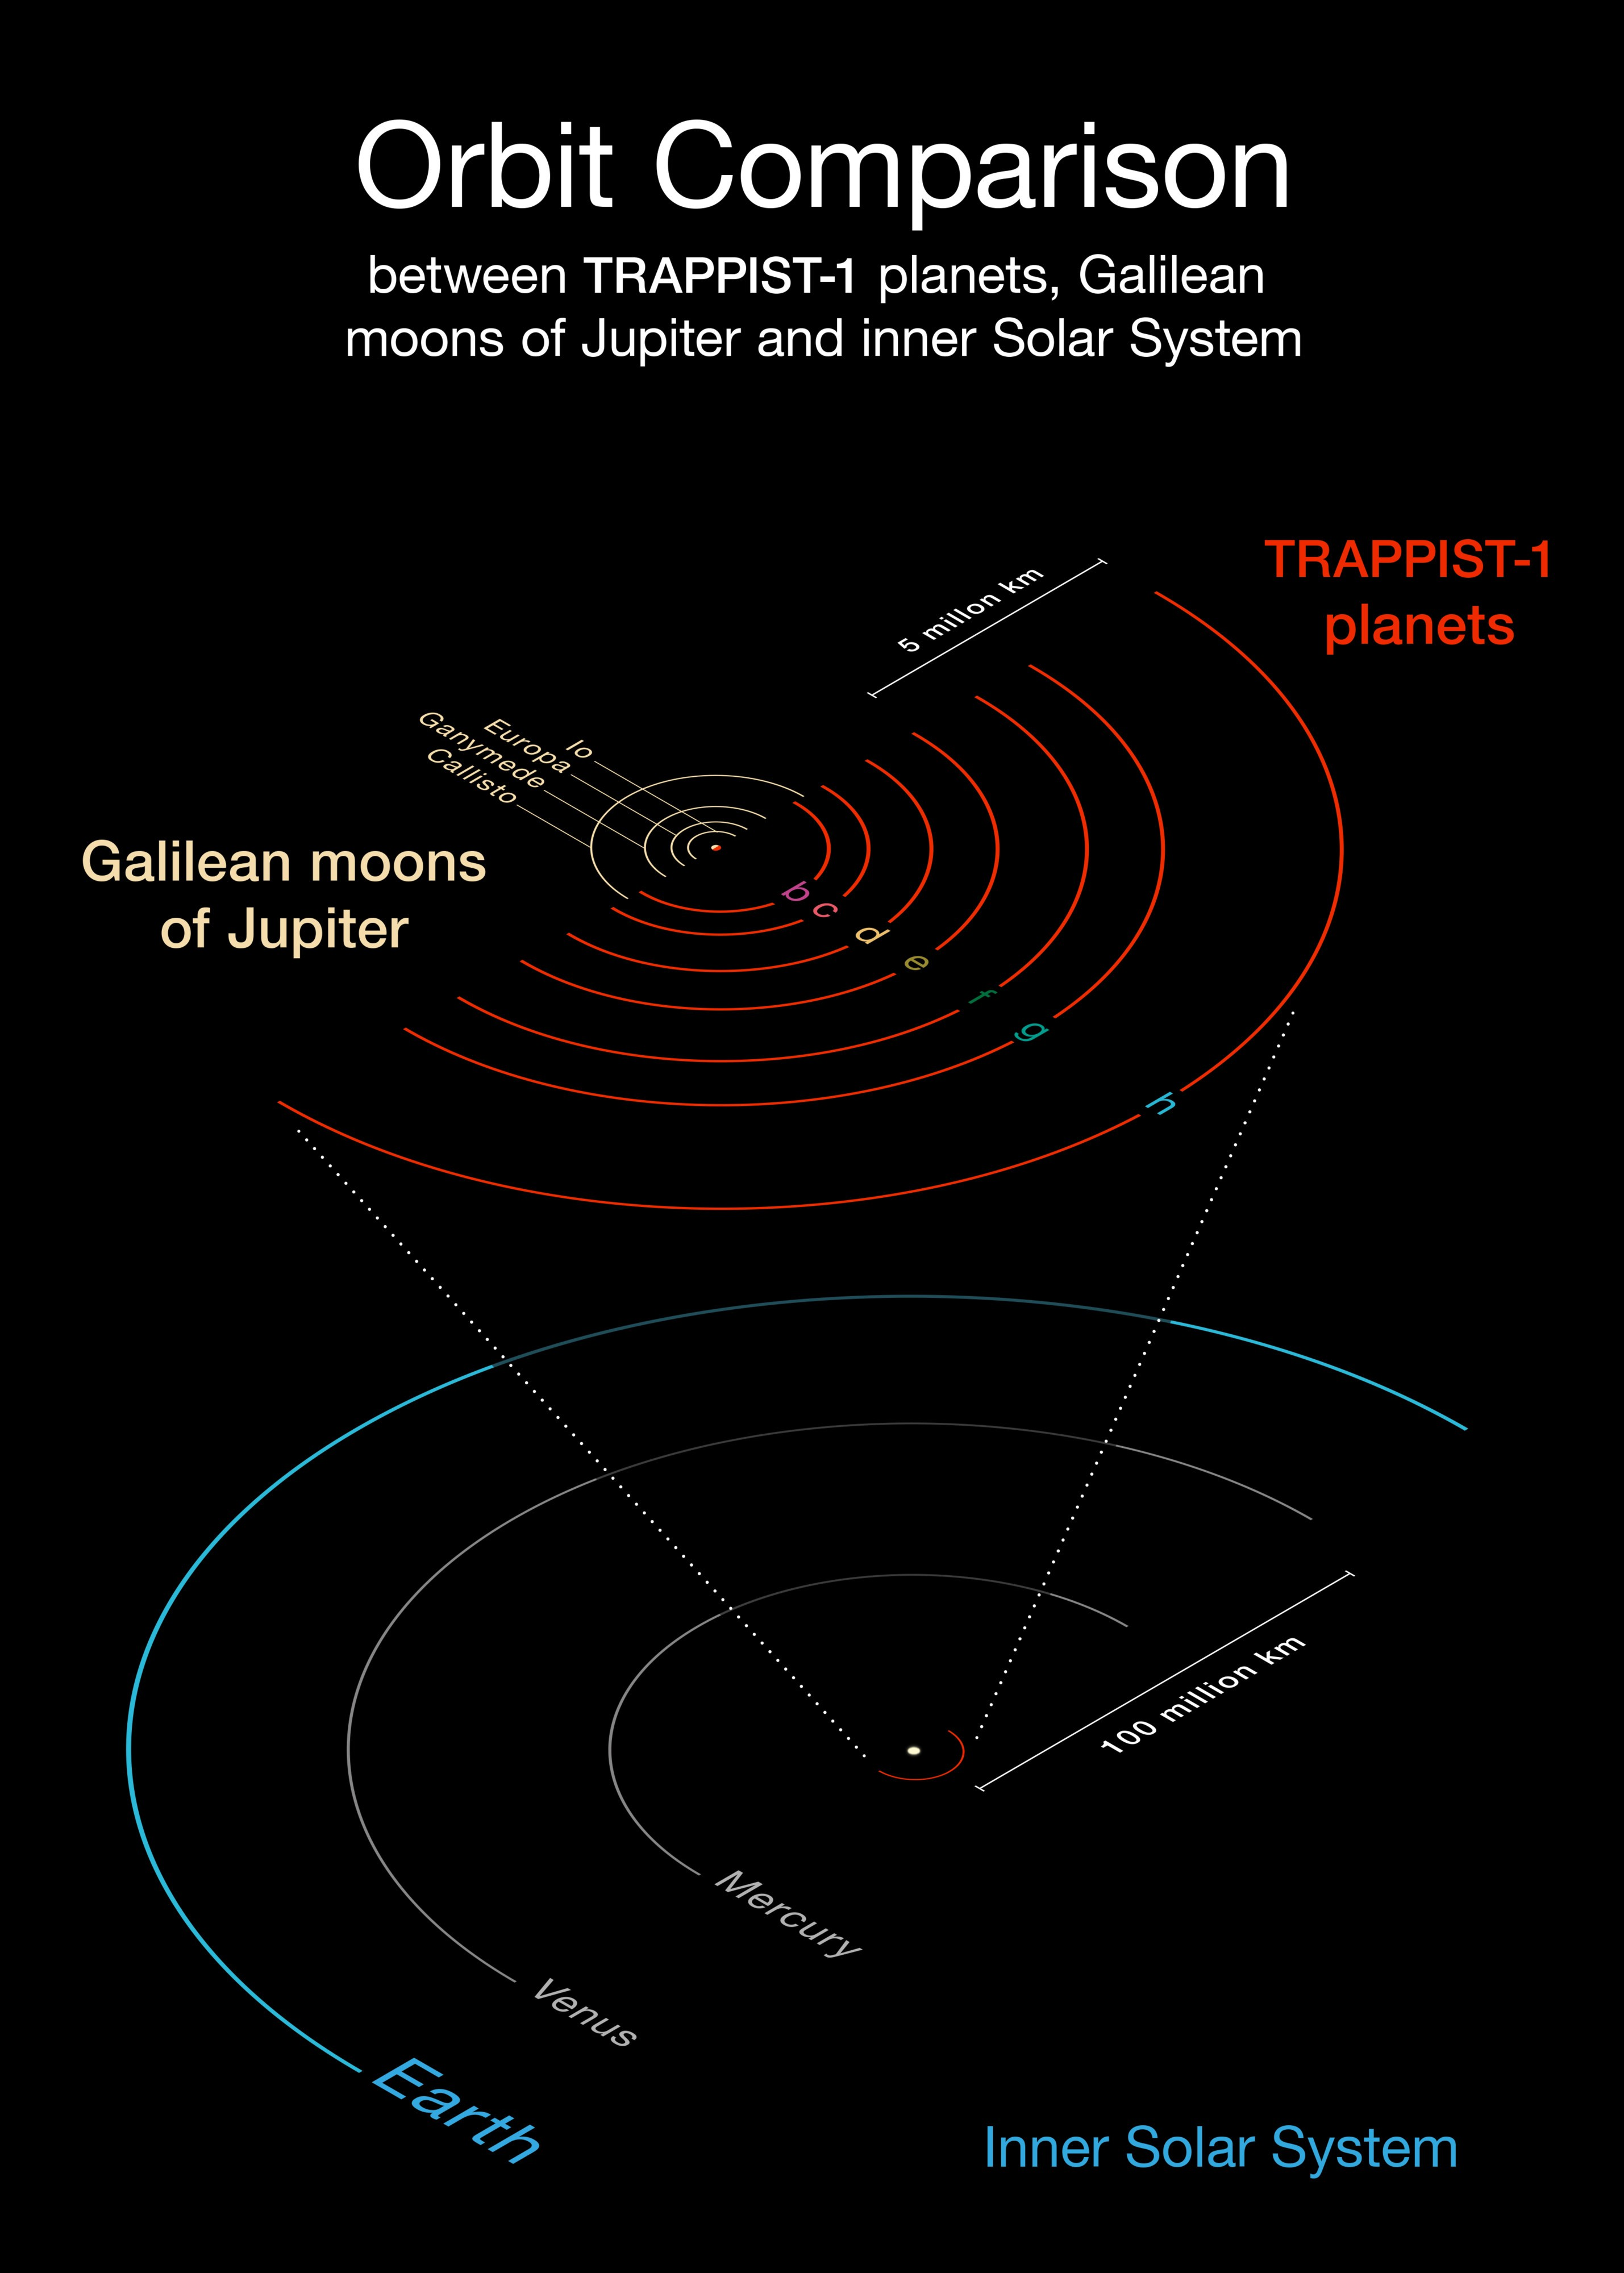 Orbit Comparison Between Trappist-1 Planets, Galilean Moons Of Jupiter And Inner Solar System